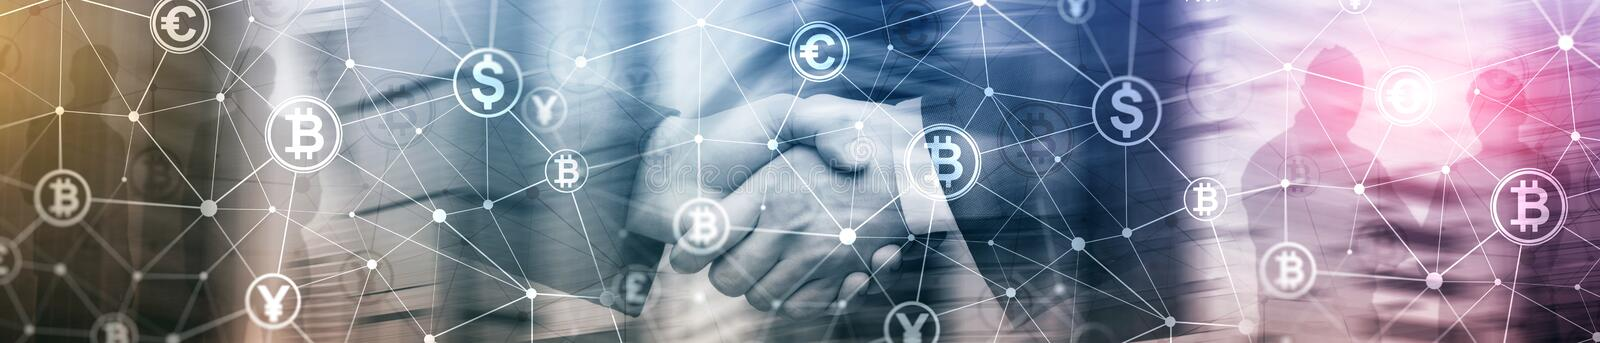 Double exposure Bitcoin and blockchain concept. Digital economy and currency trading. Website header banner stock image